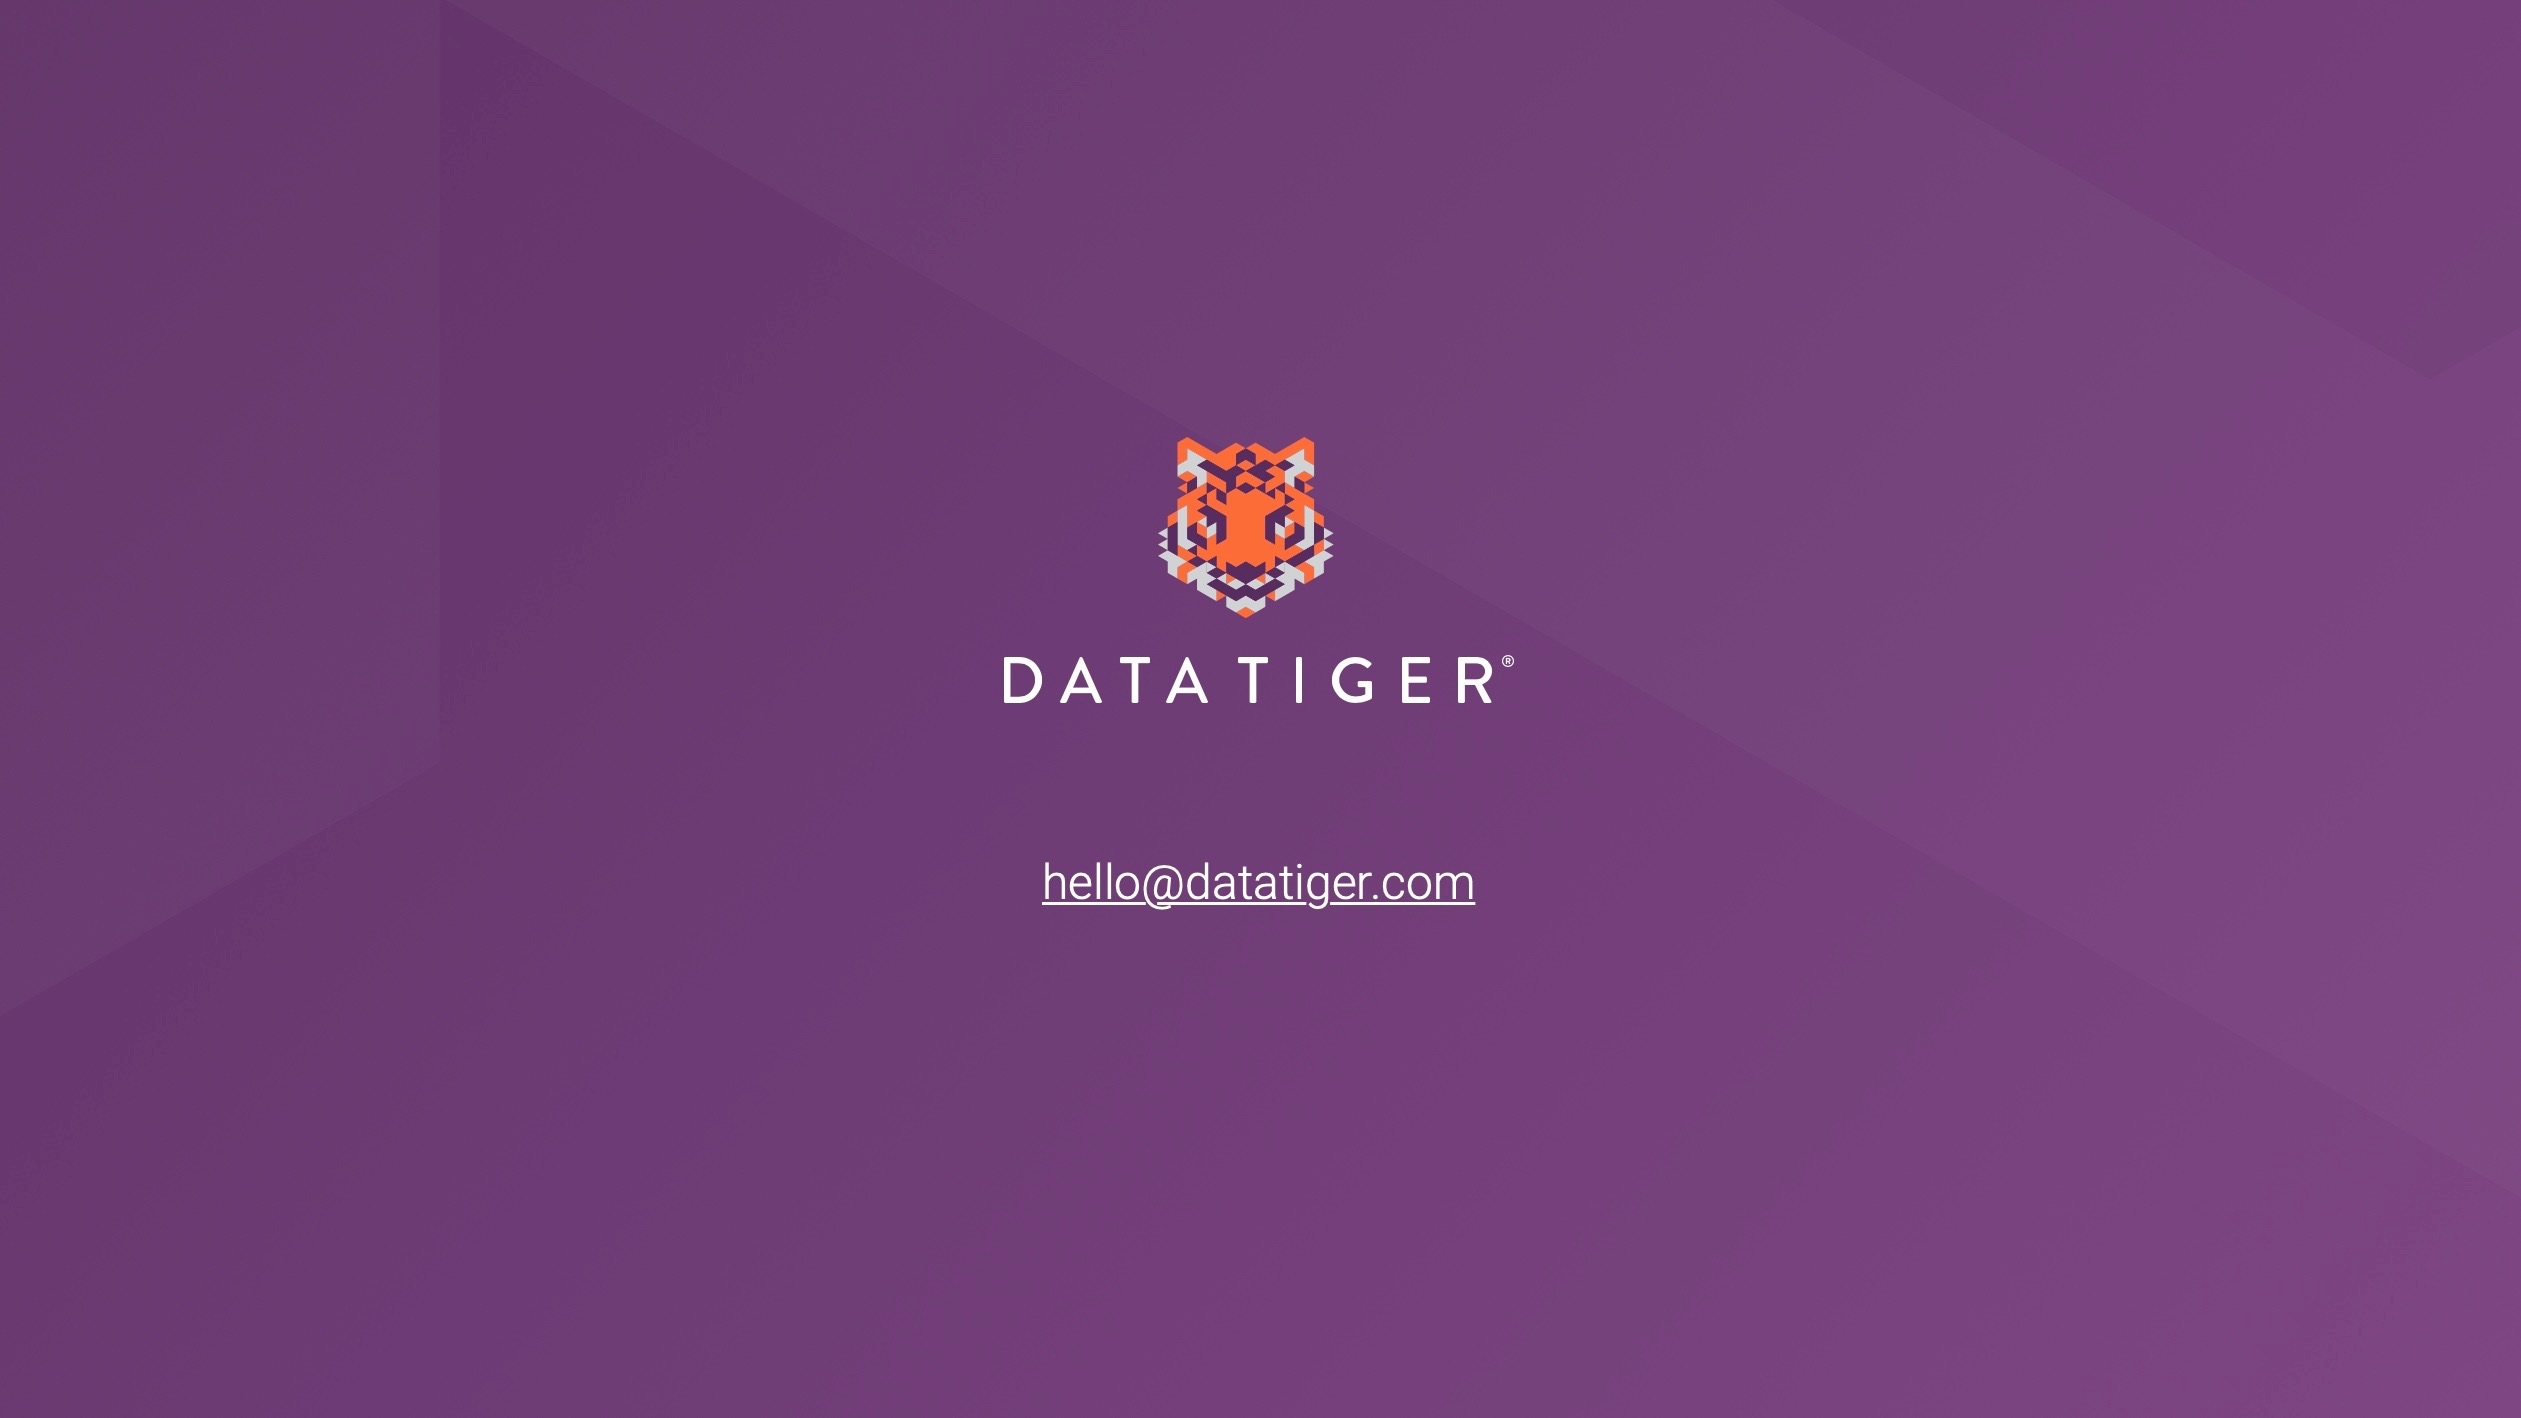 Apple acquires DataTiger, a digital marketing startup focused on 'putting your data to work'